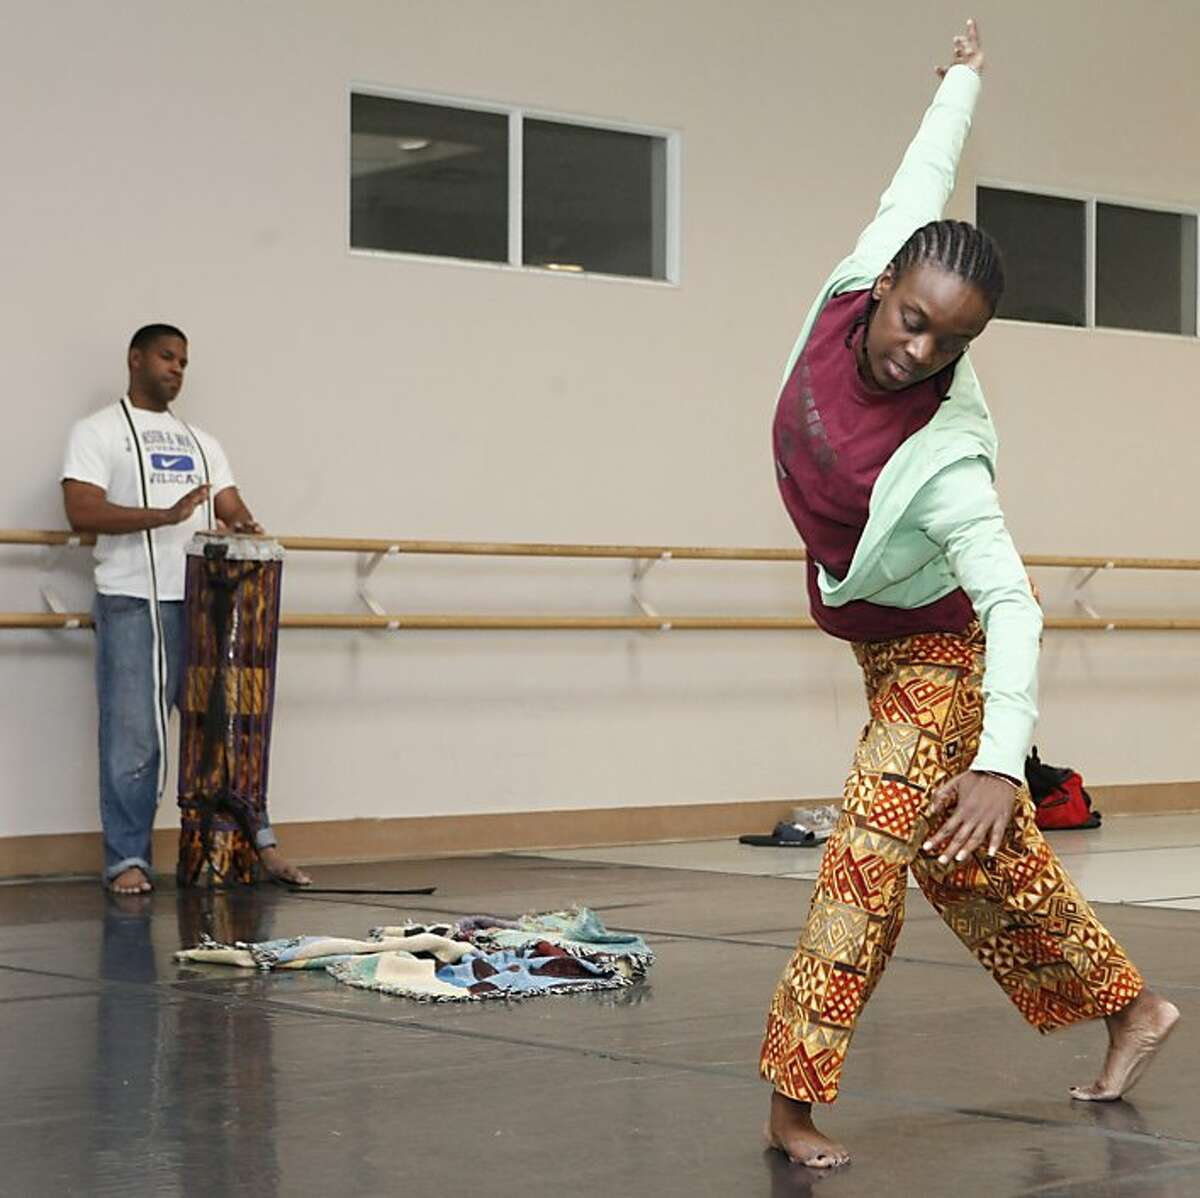 Latanya d. Tigner and Kiazi Malonga rehearse a collaborative music and dance piece for the Black Choreographers Festival at the Malonga Casquelourd Center for the Arts in Oakland Calif. on Saturday, Jan. 26, 2013. The dance Tigner performs is partially contemporary and partially based in Congolese dance traditions. Tigner and Malonga have been collaborating for about two years on this piece which origionally debuted in 2012.